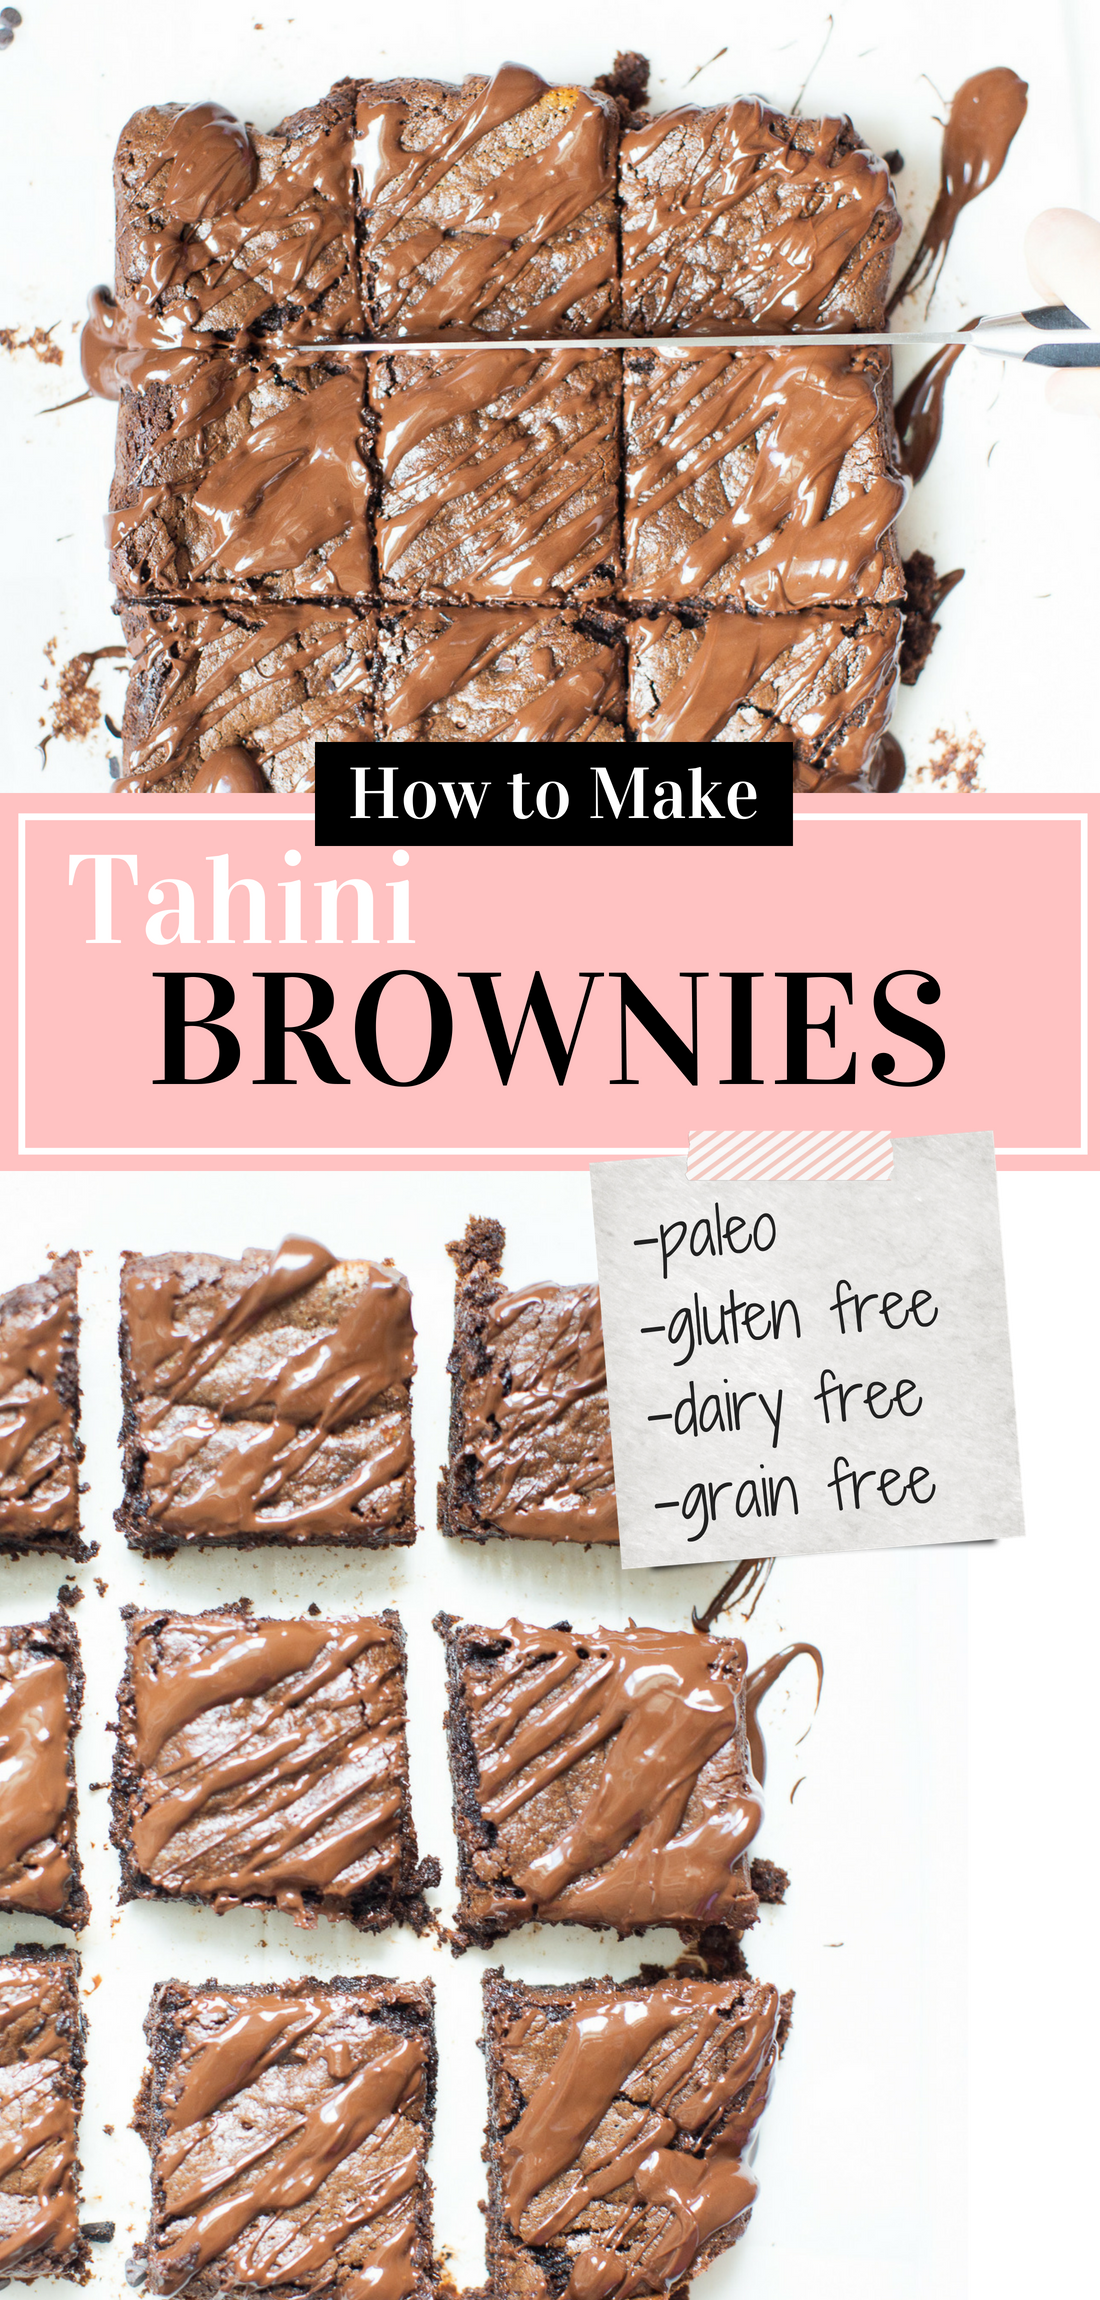 If you've been searching for a guilt-free dessert to satisfy your sweet tooth, then look no further than these magical fudgy tahini brownies. They are easily one of my favorite brownie recipes EVER! #brownies #healthydessert #tahinibrownies #glutenfree #dairyfree #paleo #grainfree | glitterinc.com | @glitterinc